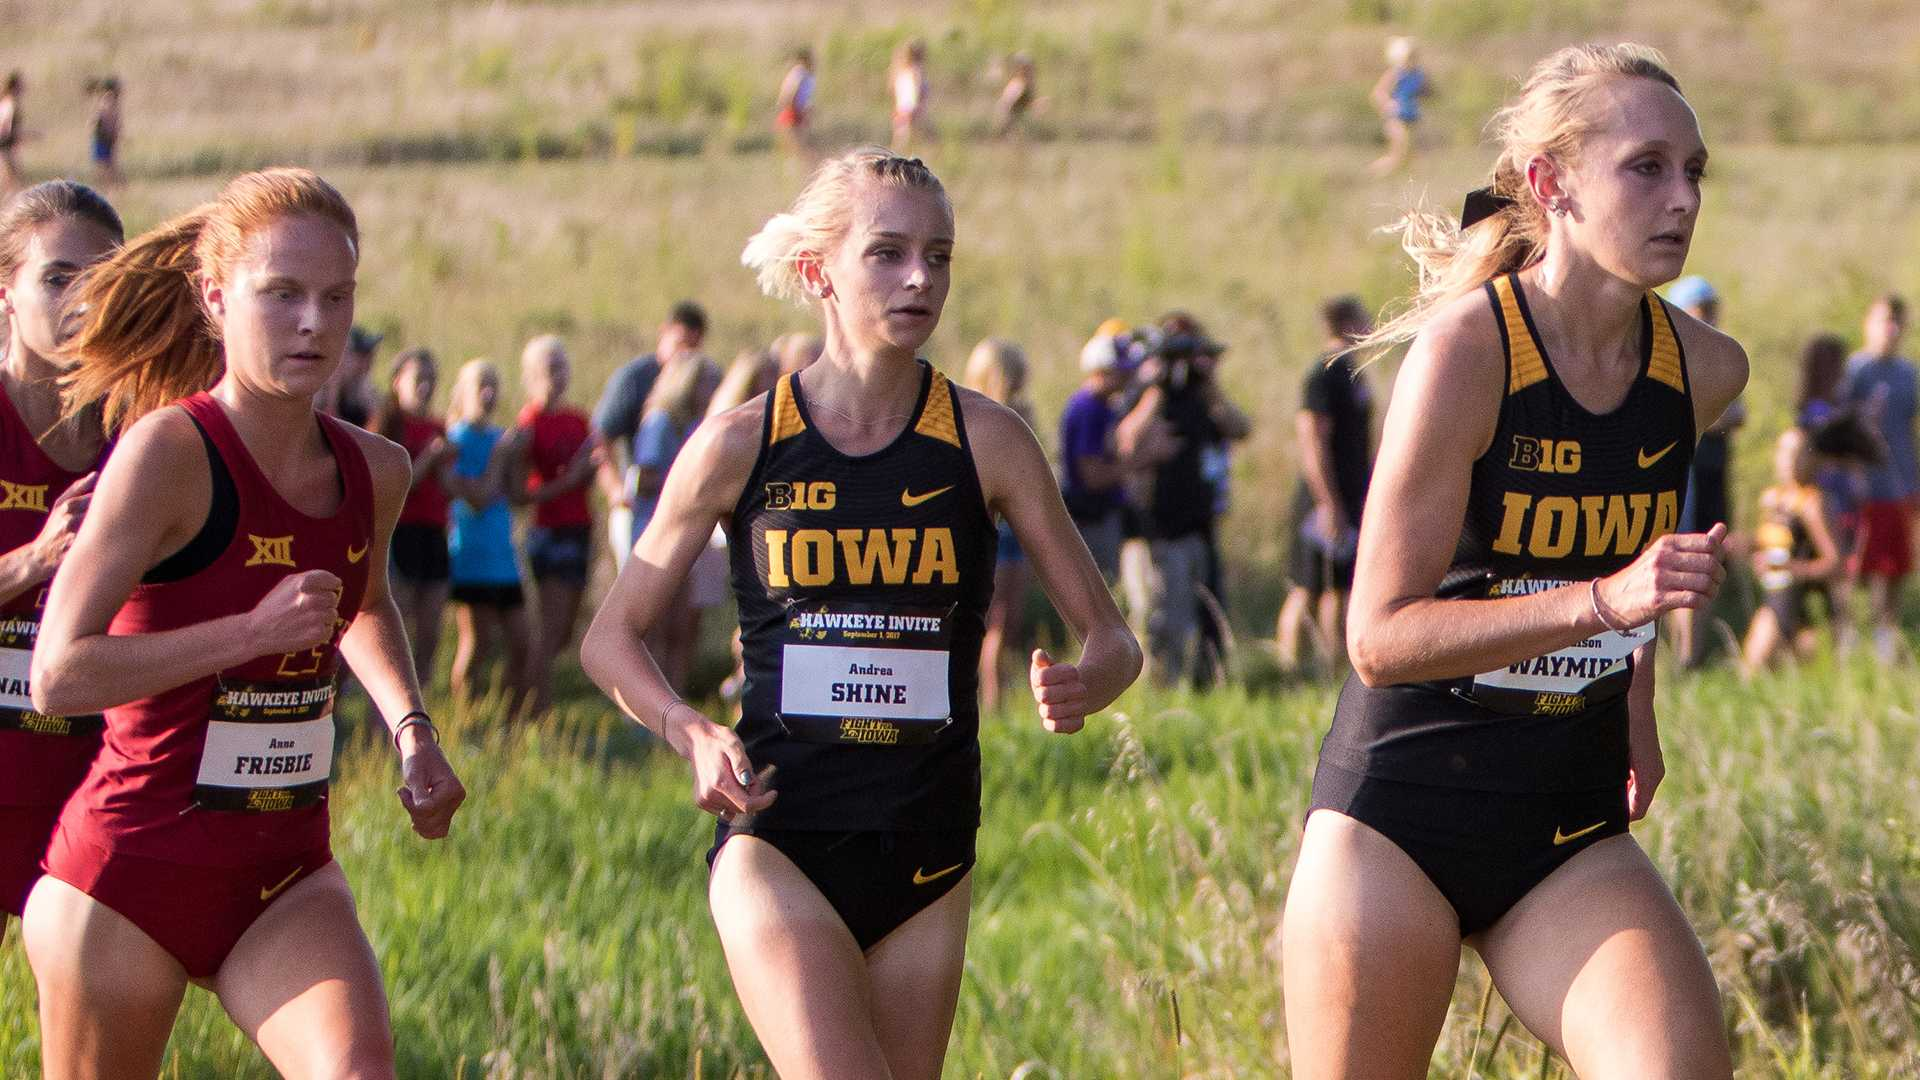 Madison Waymire (right) and Andrea Shine run up a hill at the Hawkeye Invitational Cross Country meet on Friday, September 1, 2017. (David Harmantas/The Daily Iowan)